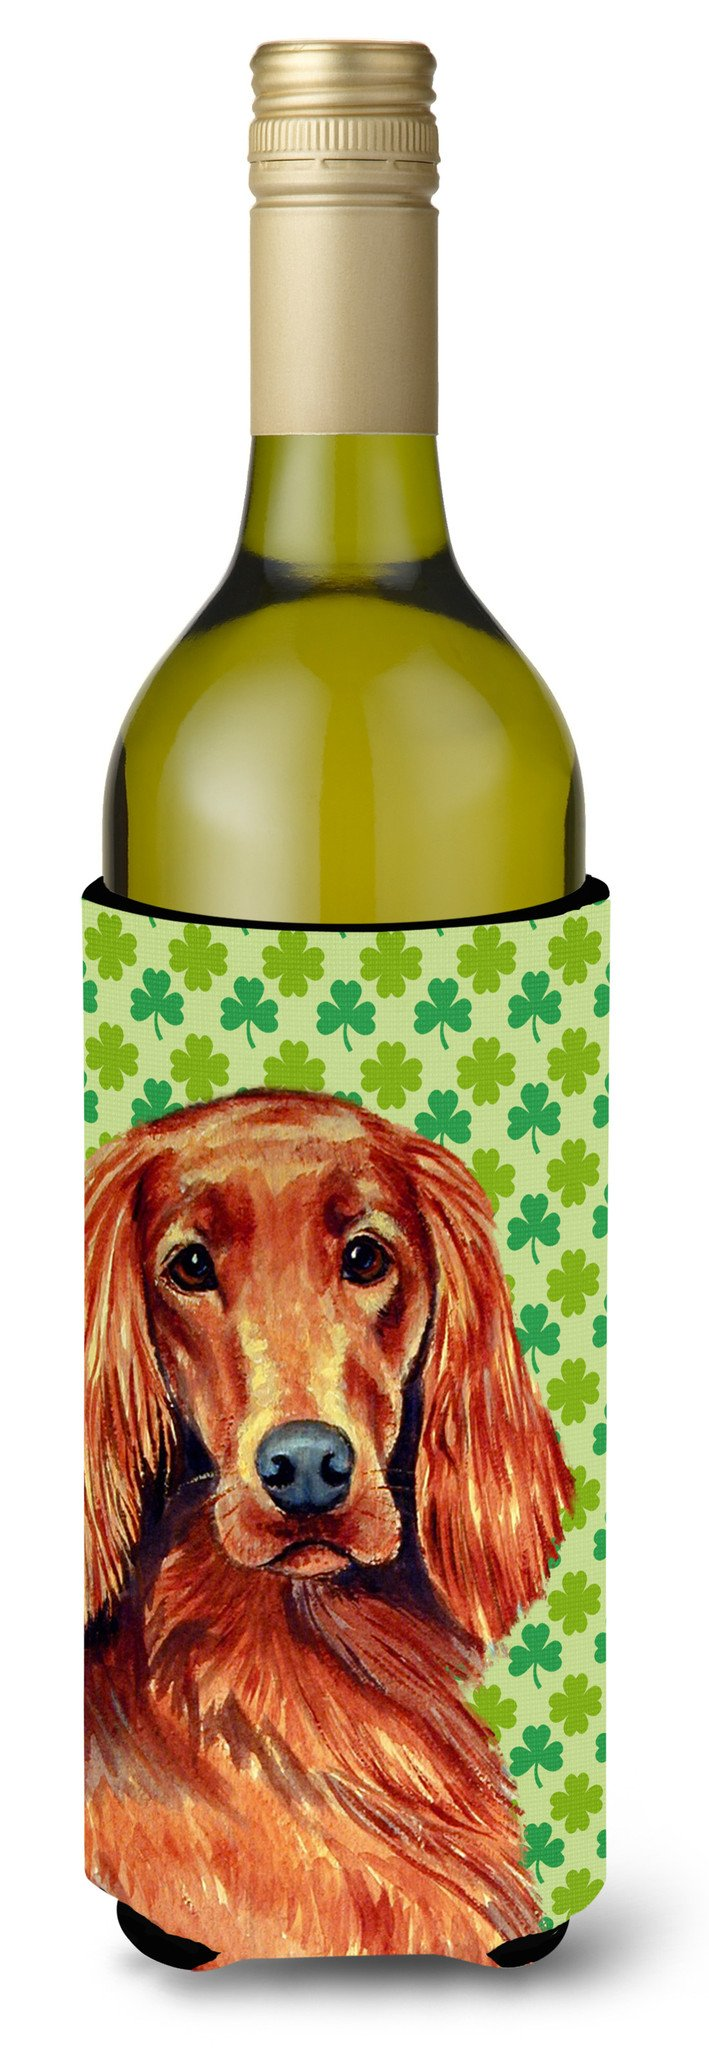 Irish Setter St. Patrick's Day Shamrock Portrait Wine Bottle Beverage Insulator Beverage Insulator Hugger by Caroline's Treasures